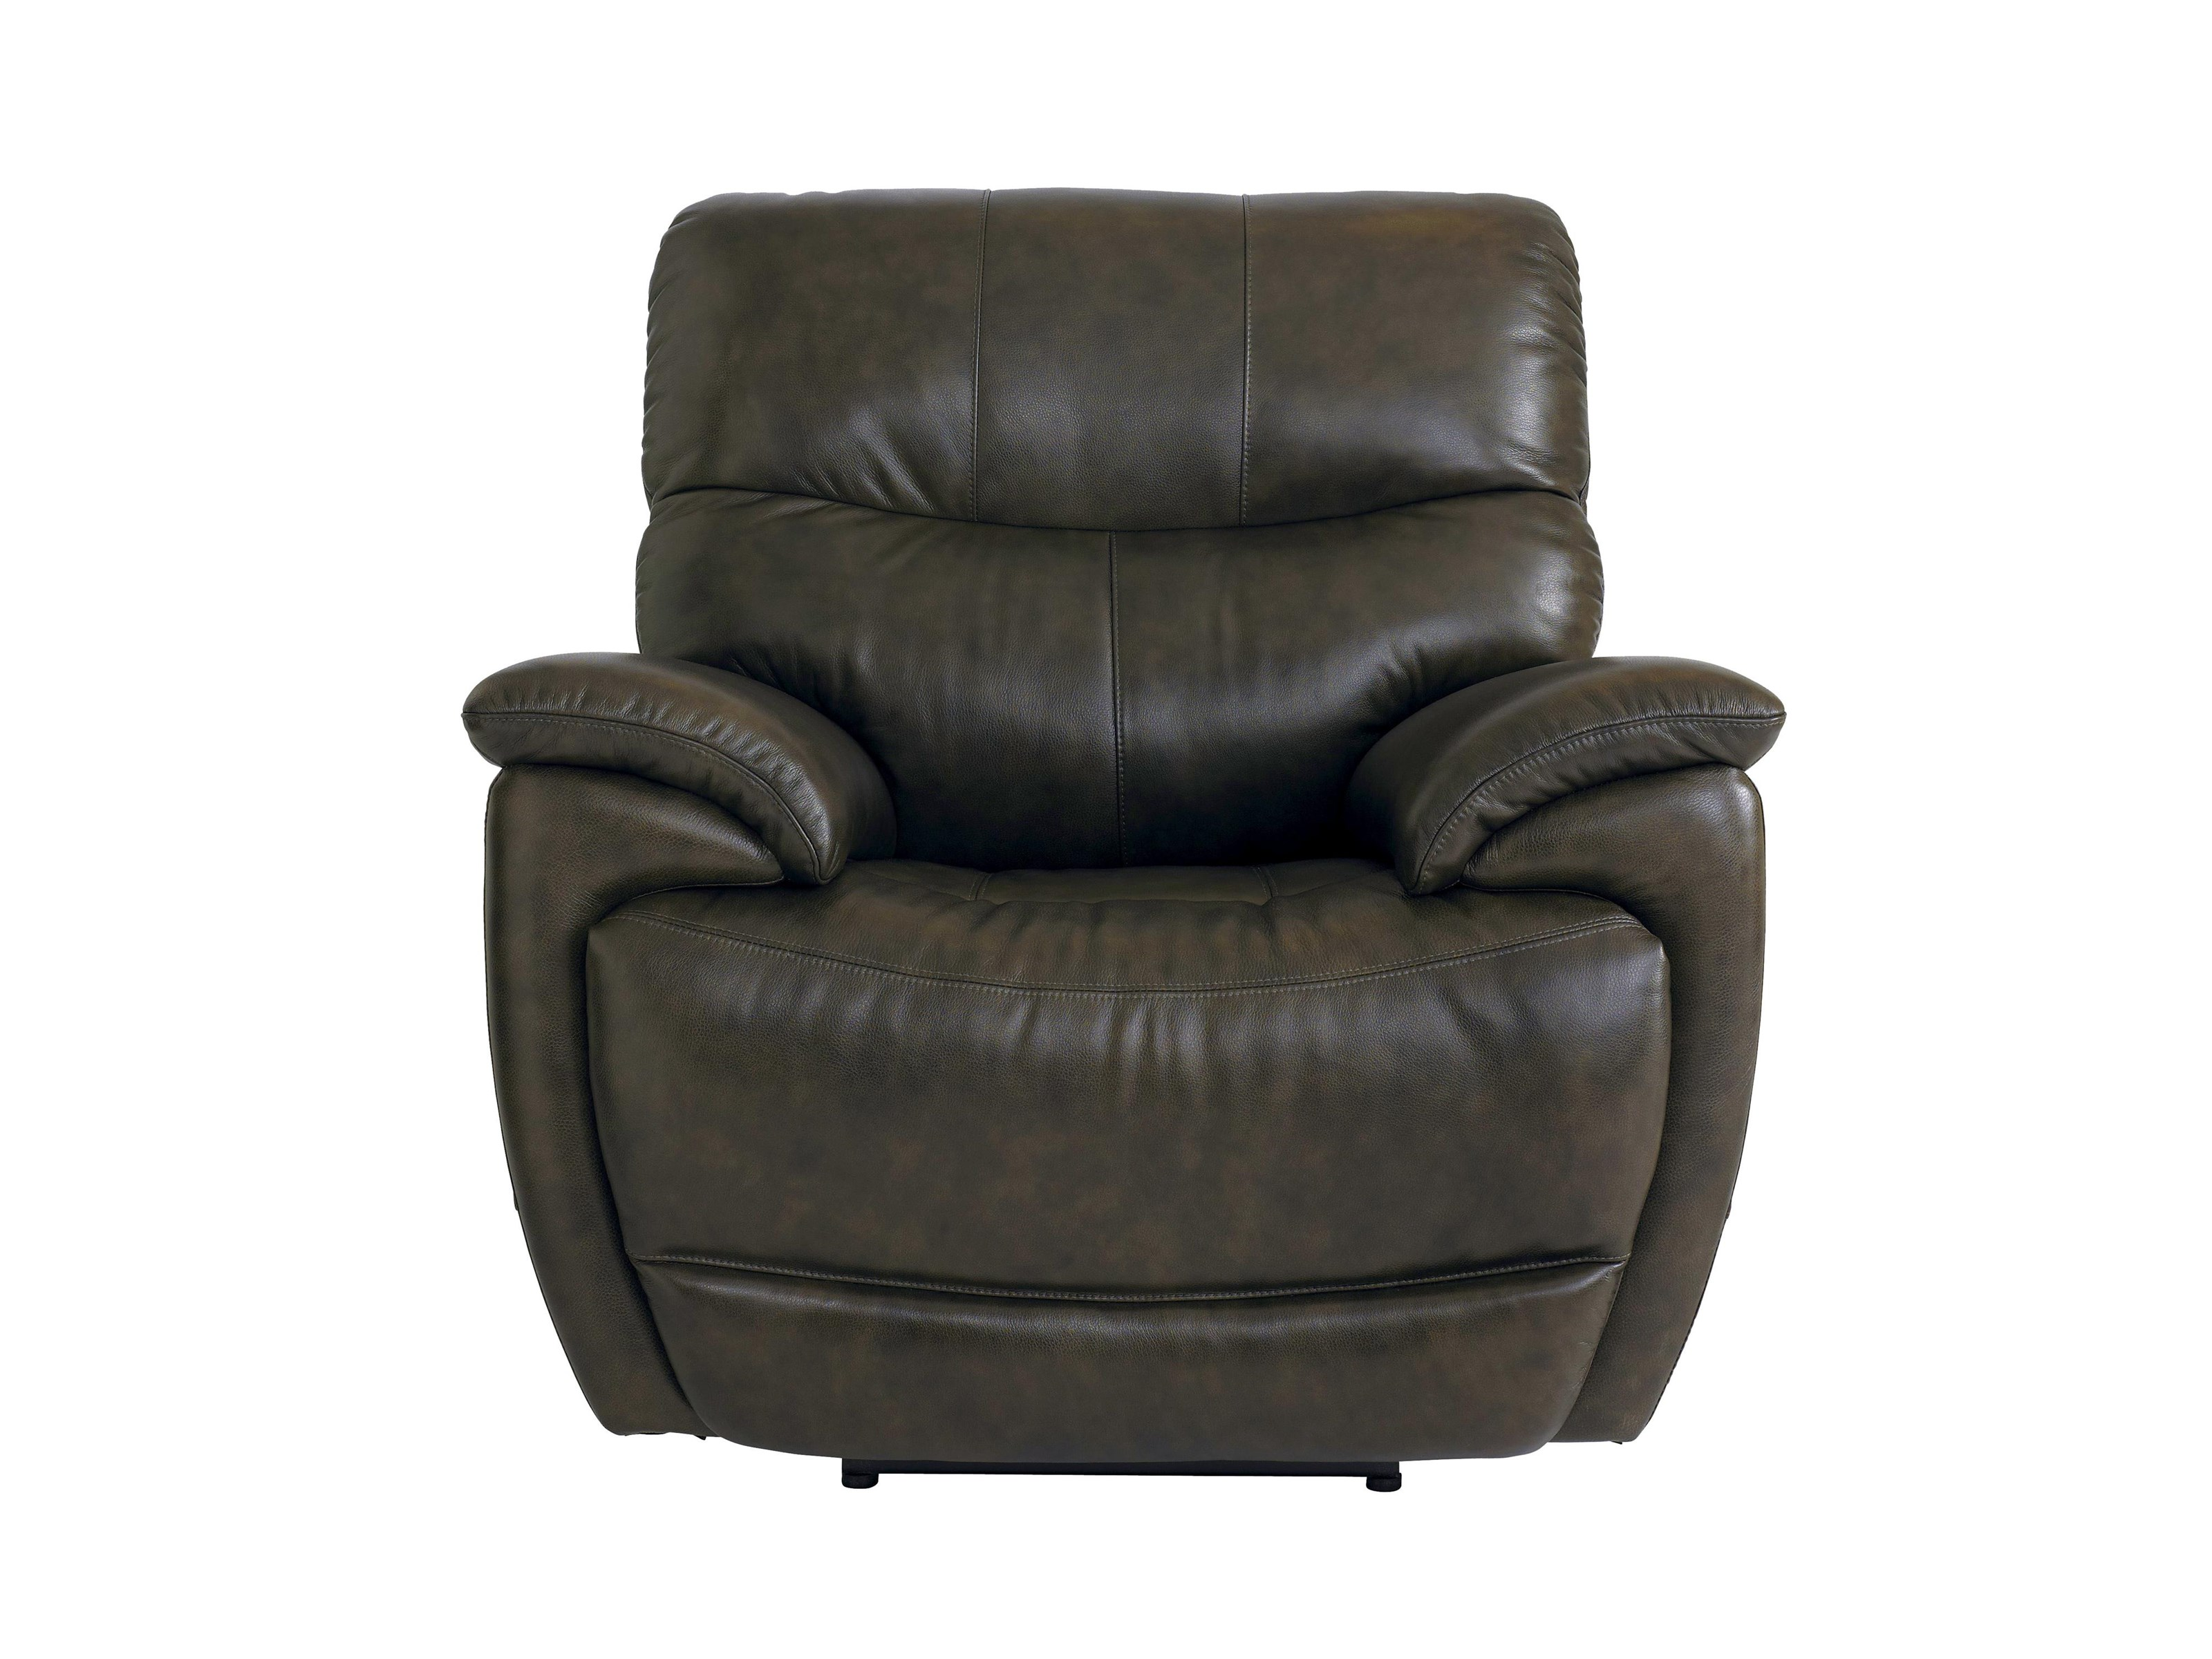 Bassett Brookville Leather Recliner With Power Head and Foot Re - Item Number: 3713-P0T